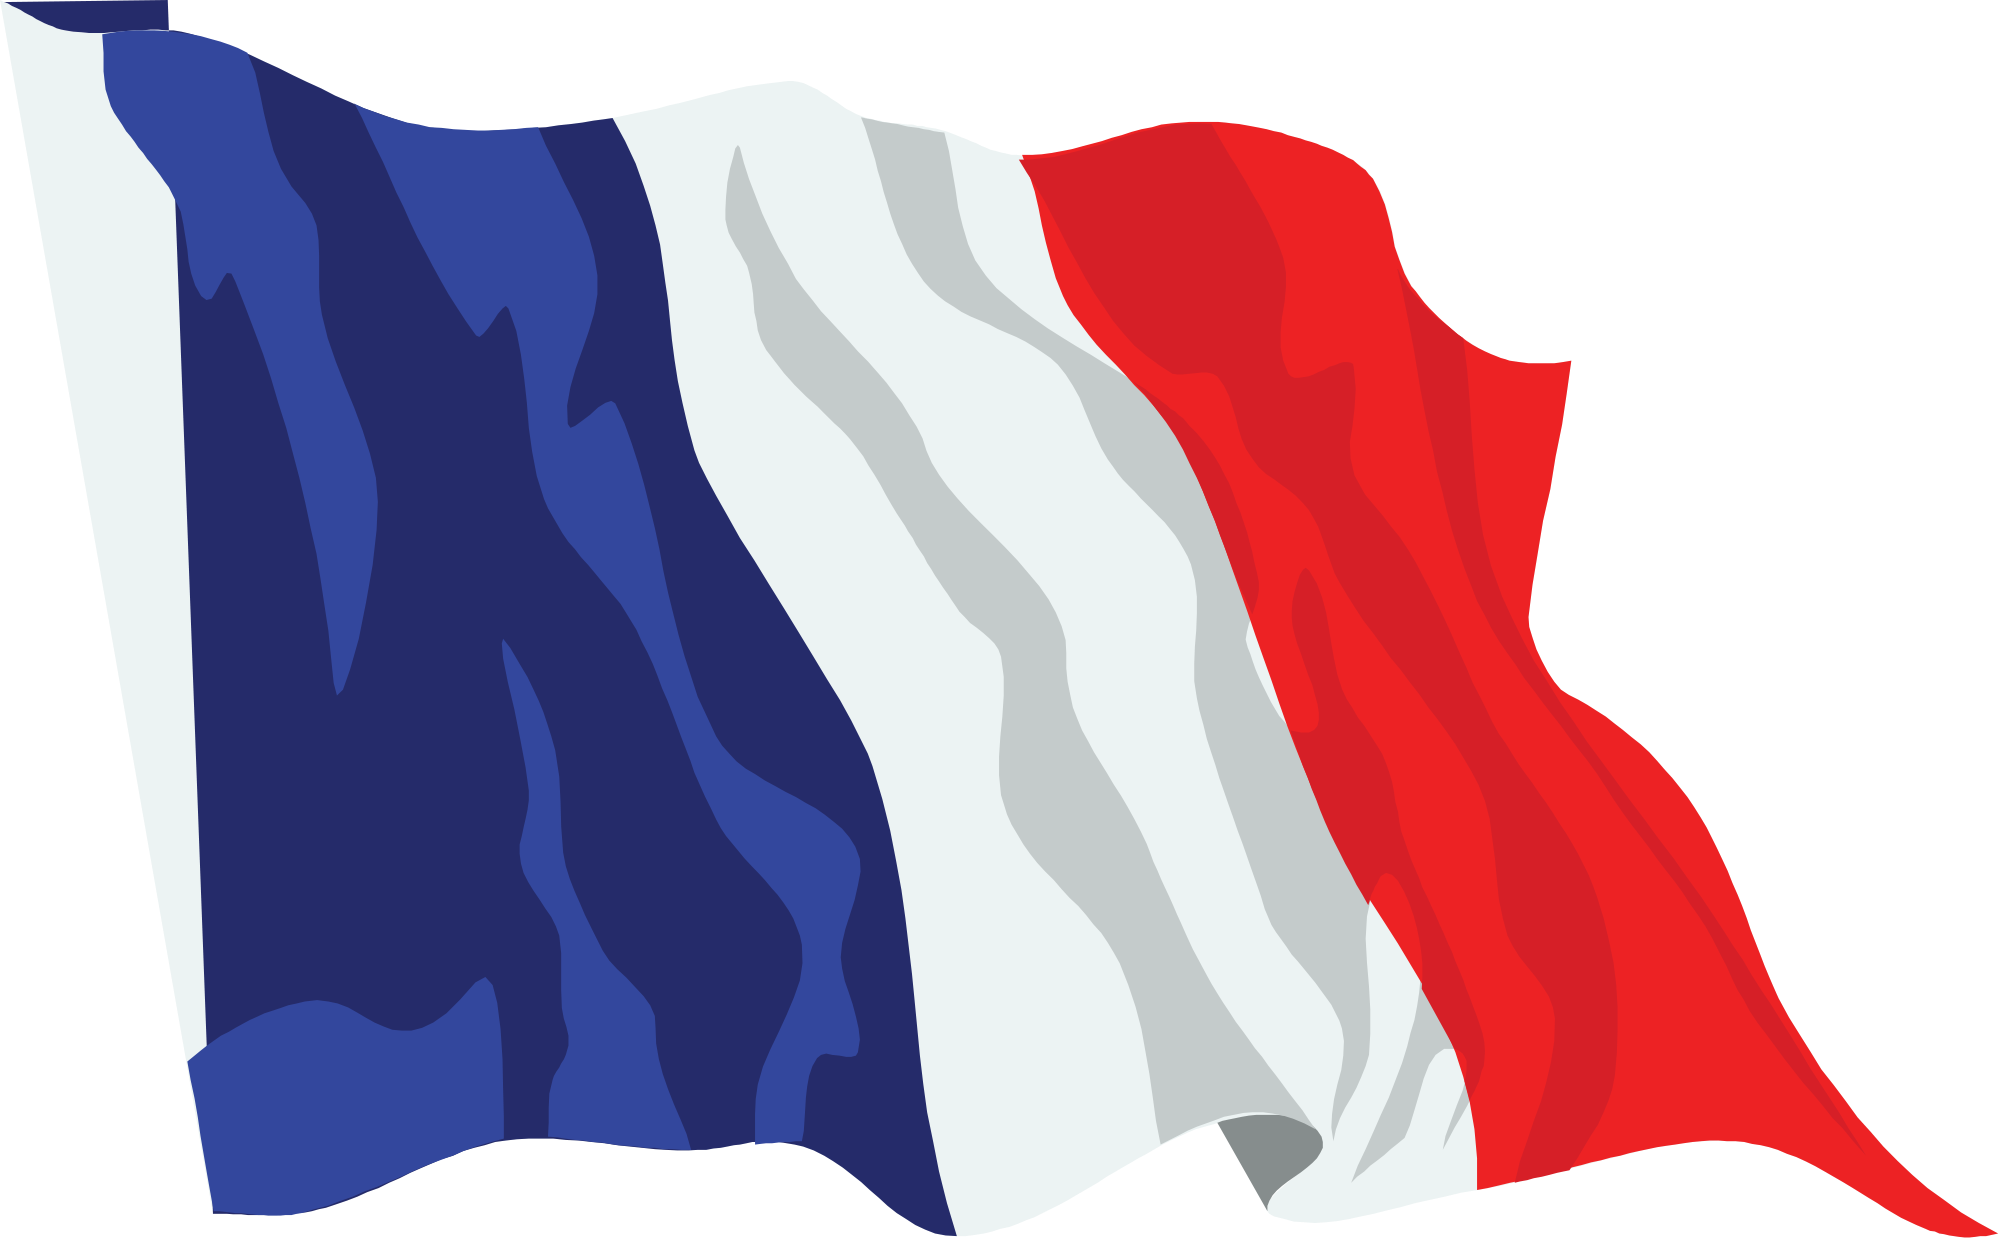 French clipart transparent. France flag png free